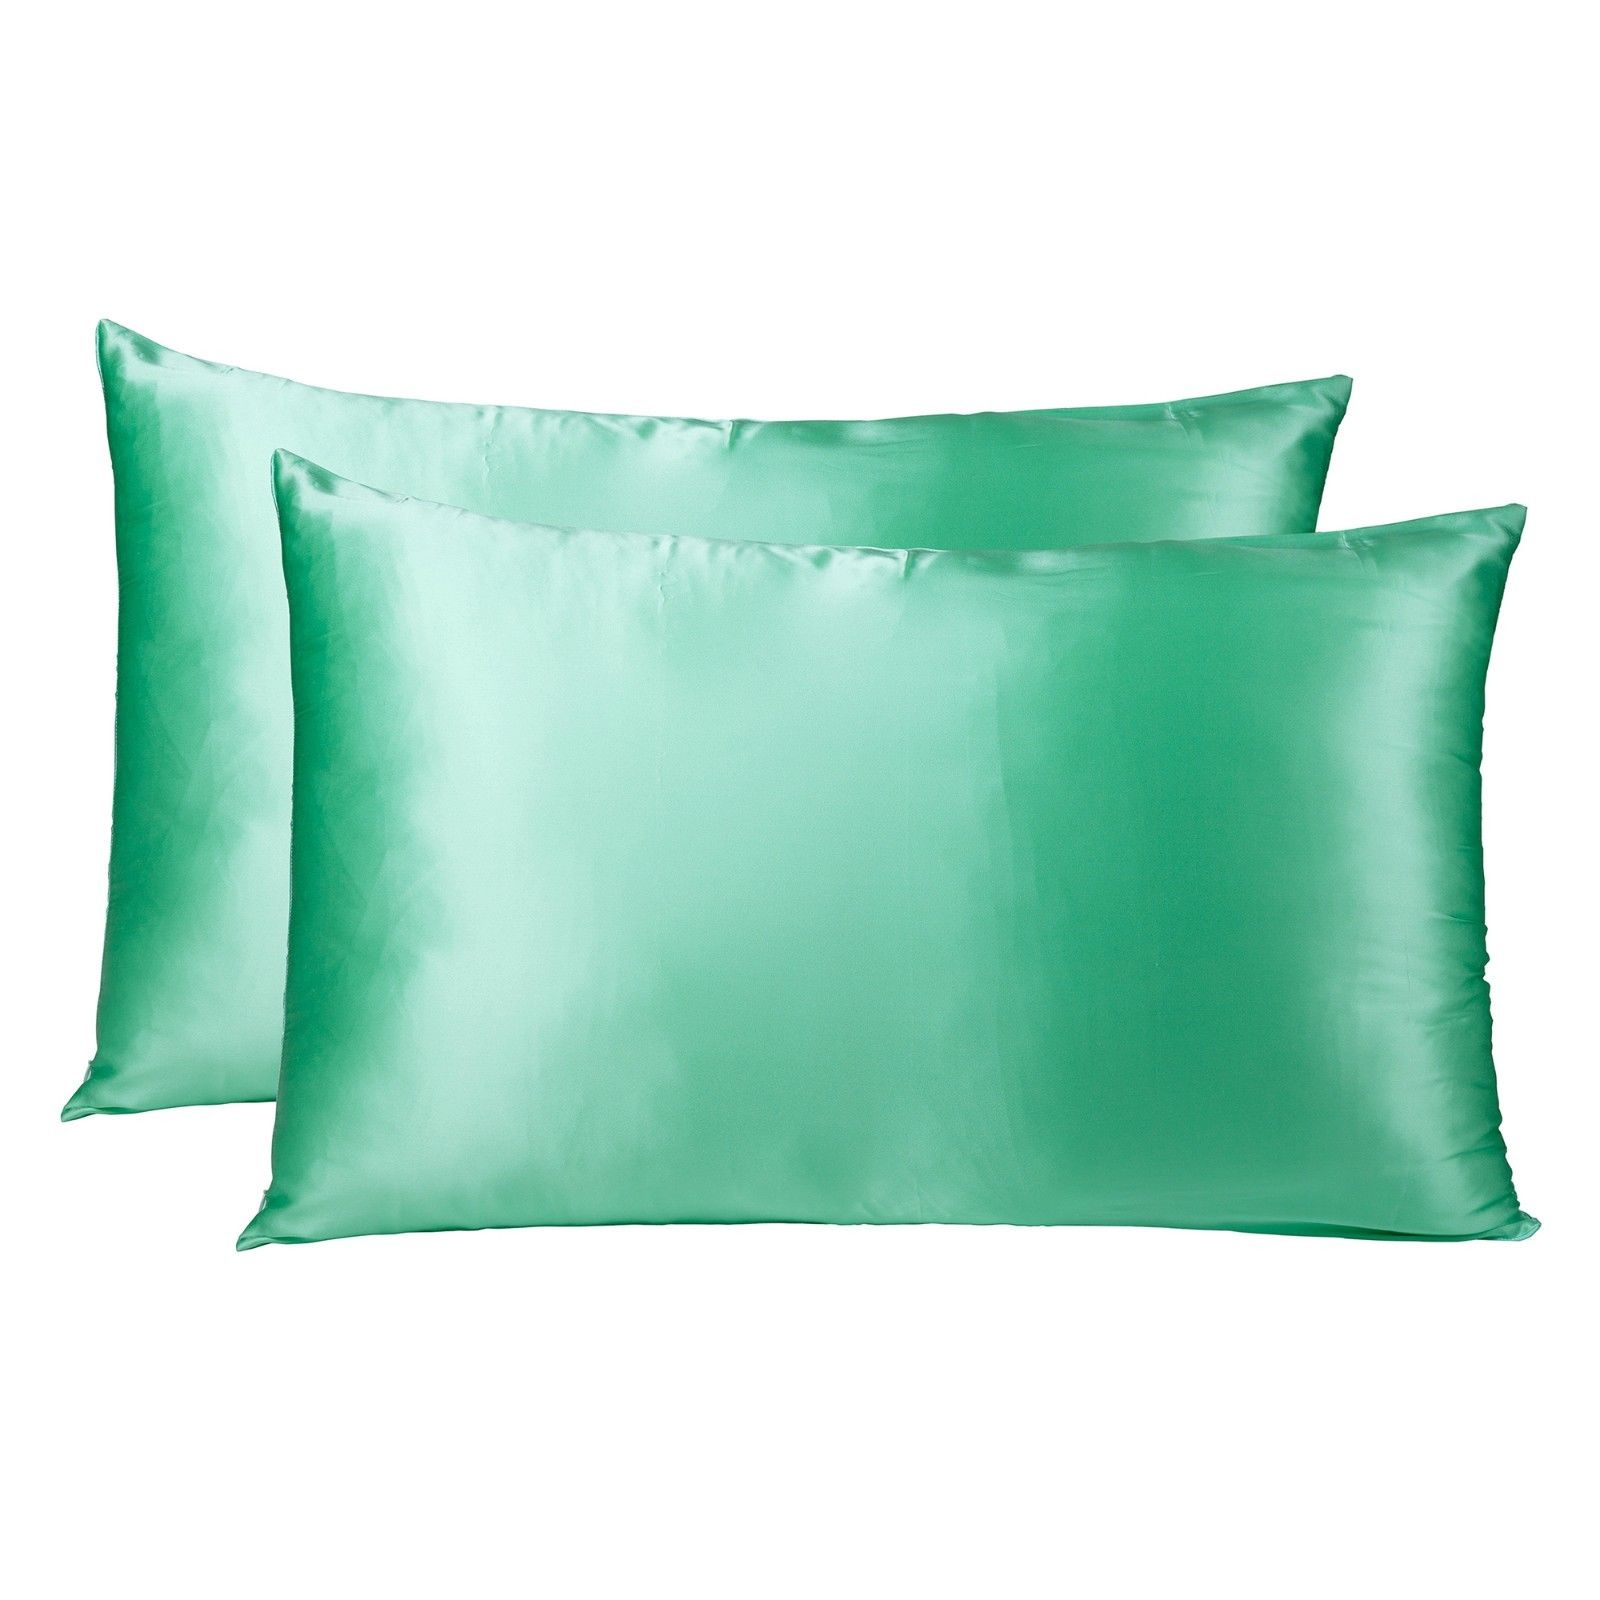 Royal-Comfort-Mulberry-Soft-Silk-Hypoallergenic-Pillowcase-Twin-Pack-51-x-76cm thumbnail 28